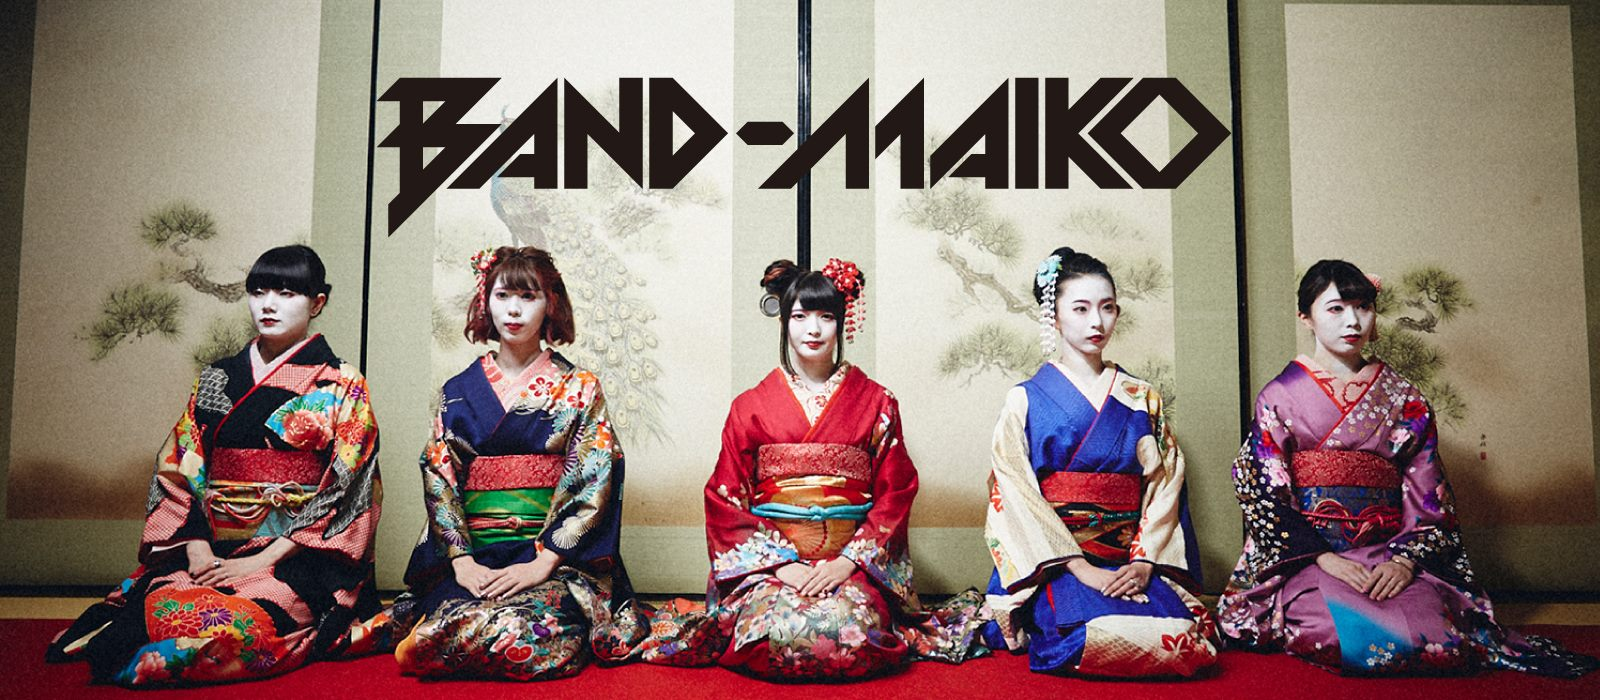 JRock247-Band-Maid-Band-Maiko-secret-Maiko-lips-MV-2